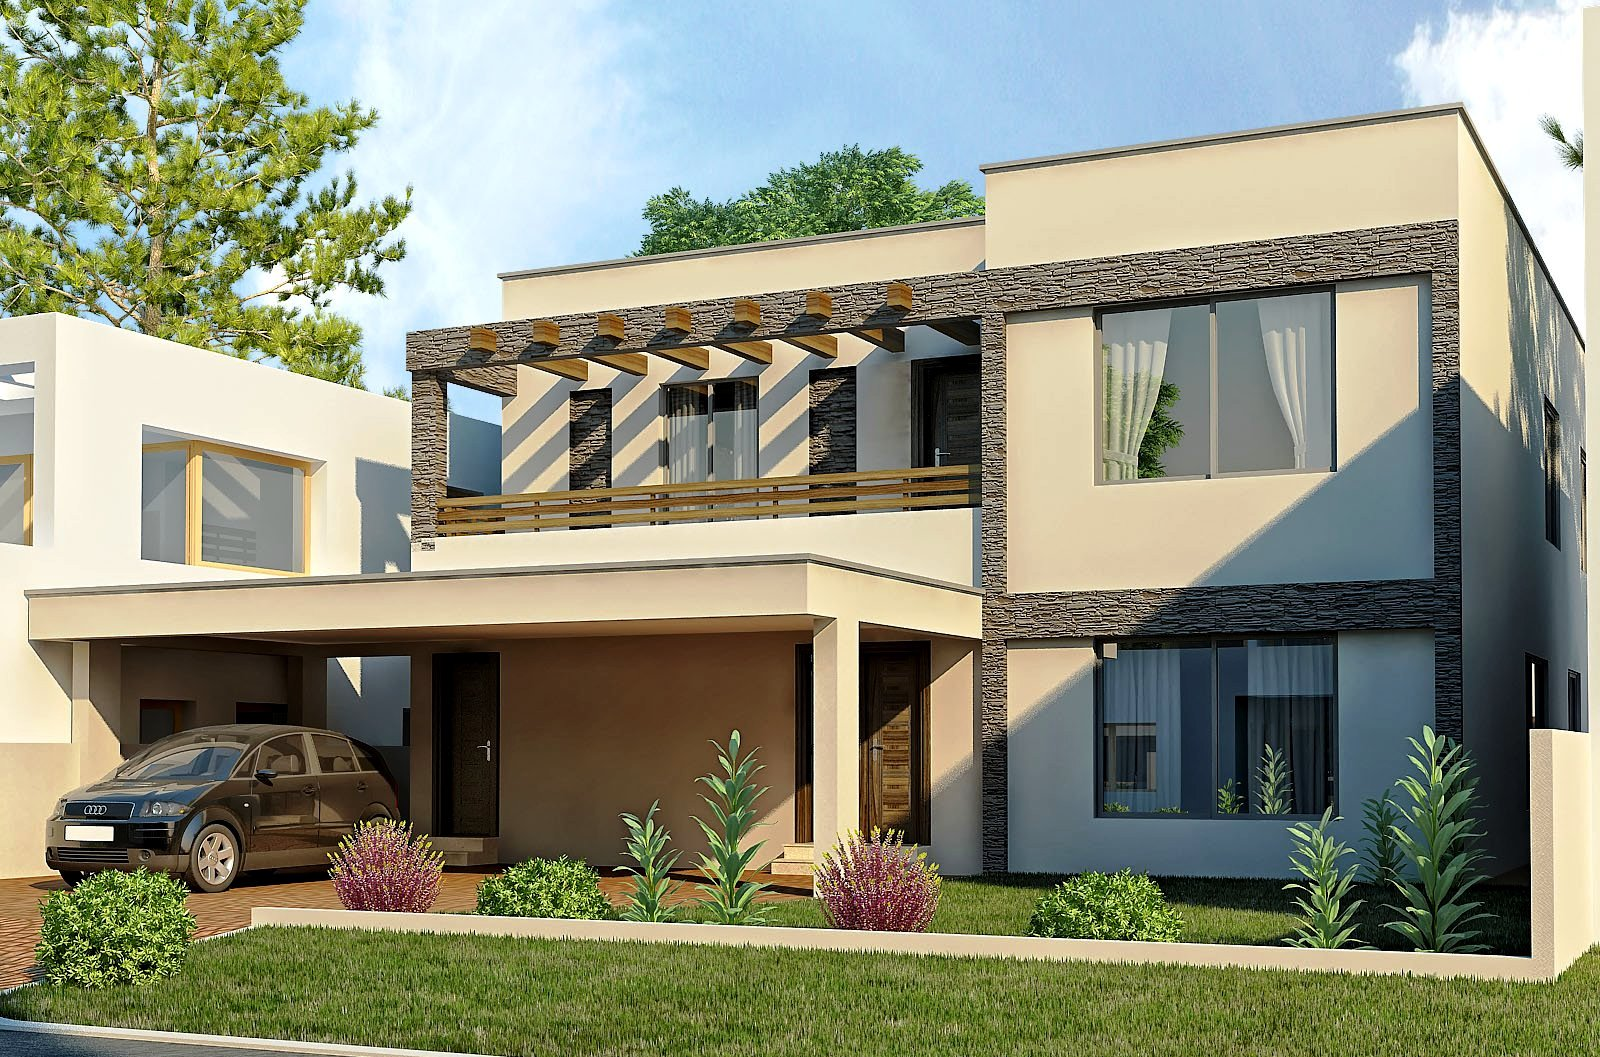 New home designs latest modern homes exterior designs views for Modern exterior house designs